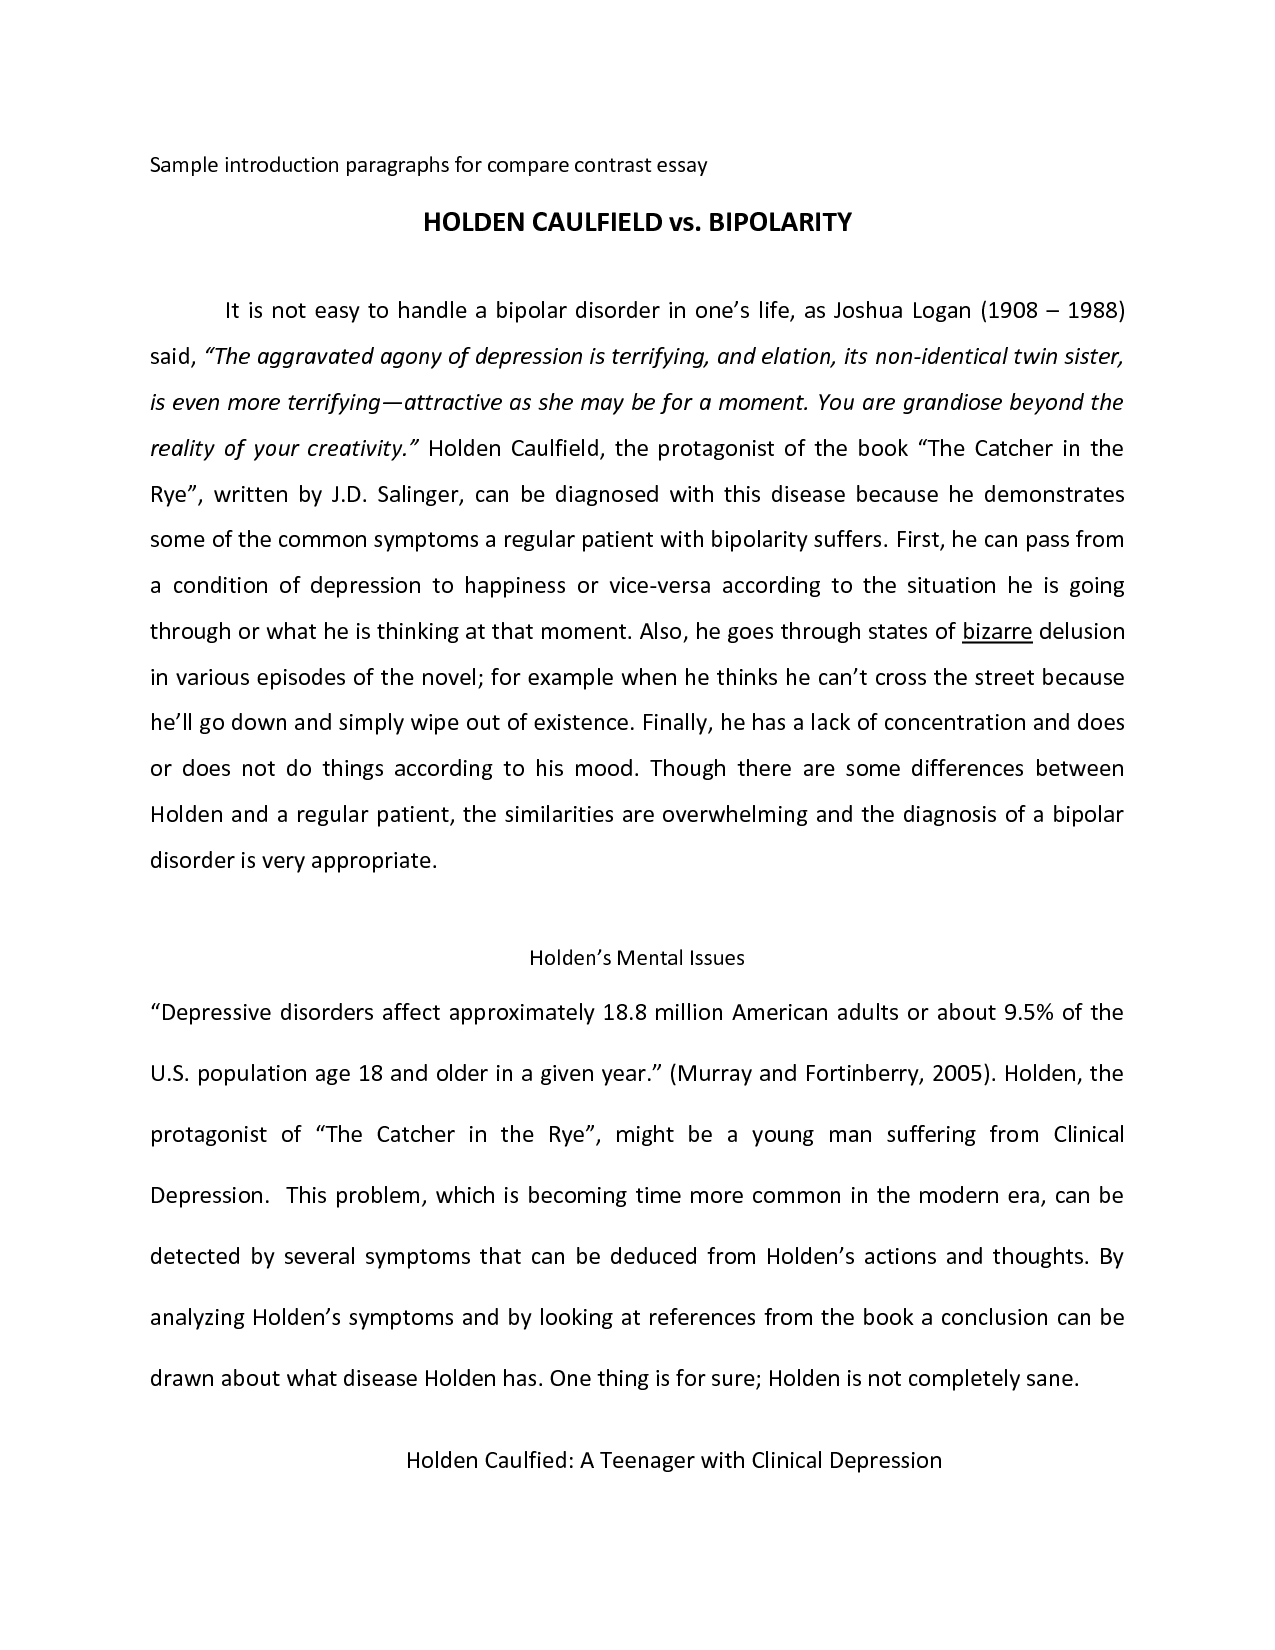 011 Compare And Contrast Essay Introduction Example Collection Of Solutions Examples Comparison Essays Bunch Ideas On L Block Format 4th Grade 5th Food Middle Magnificent Paragraph How To Write A Template Full